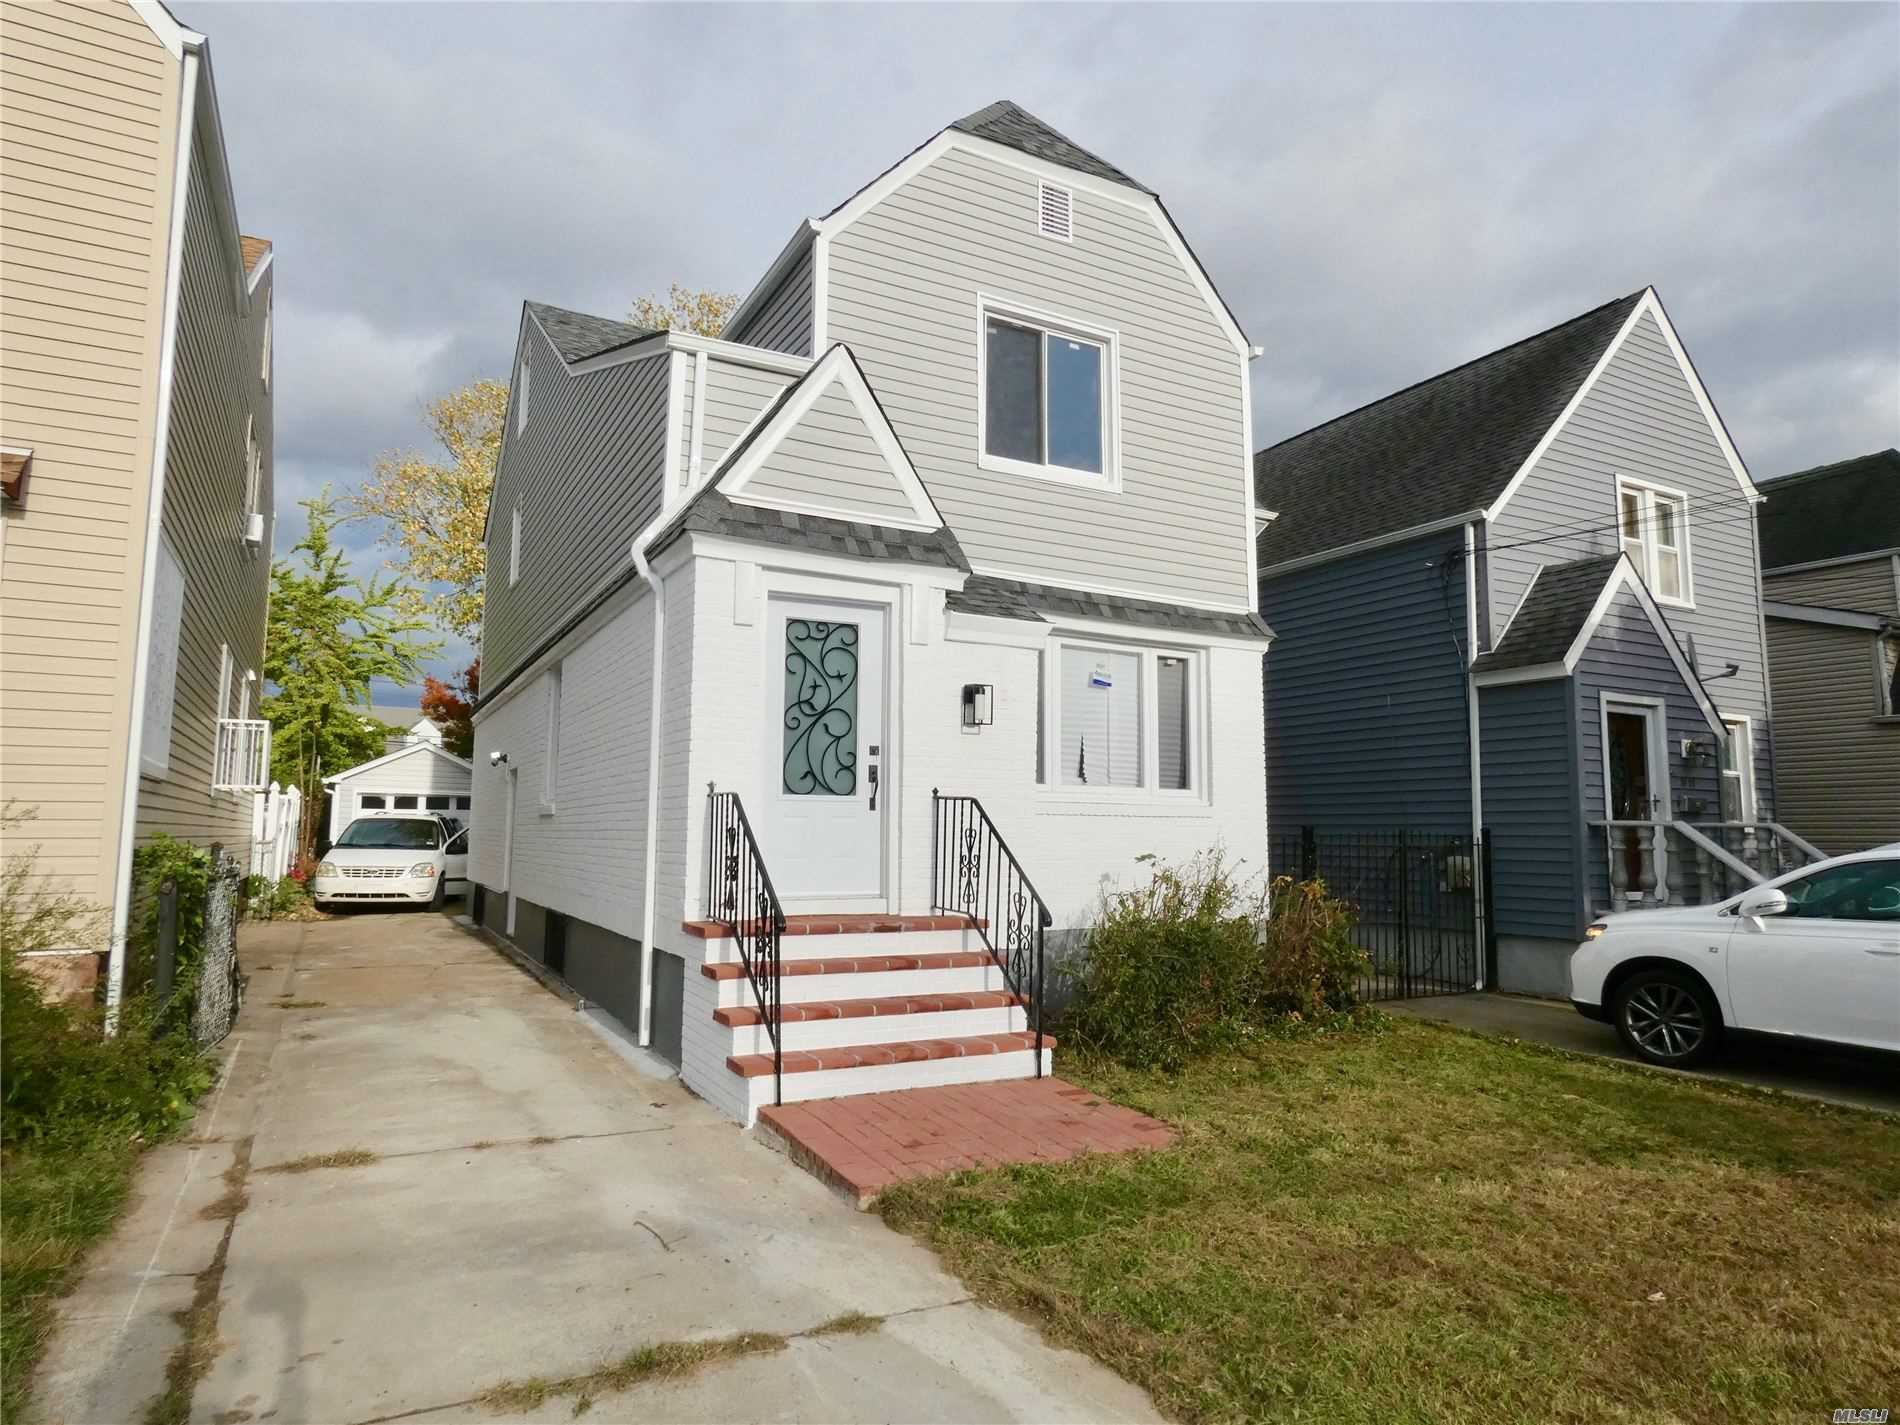 89-15 210th Place, Queens Village, NY 11427 - MLS#: 3196615